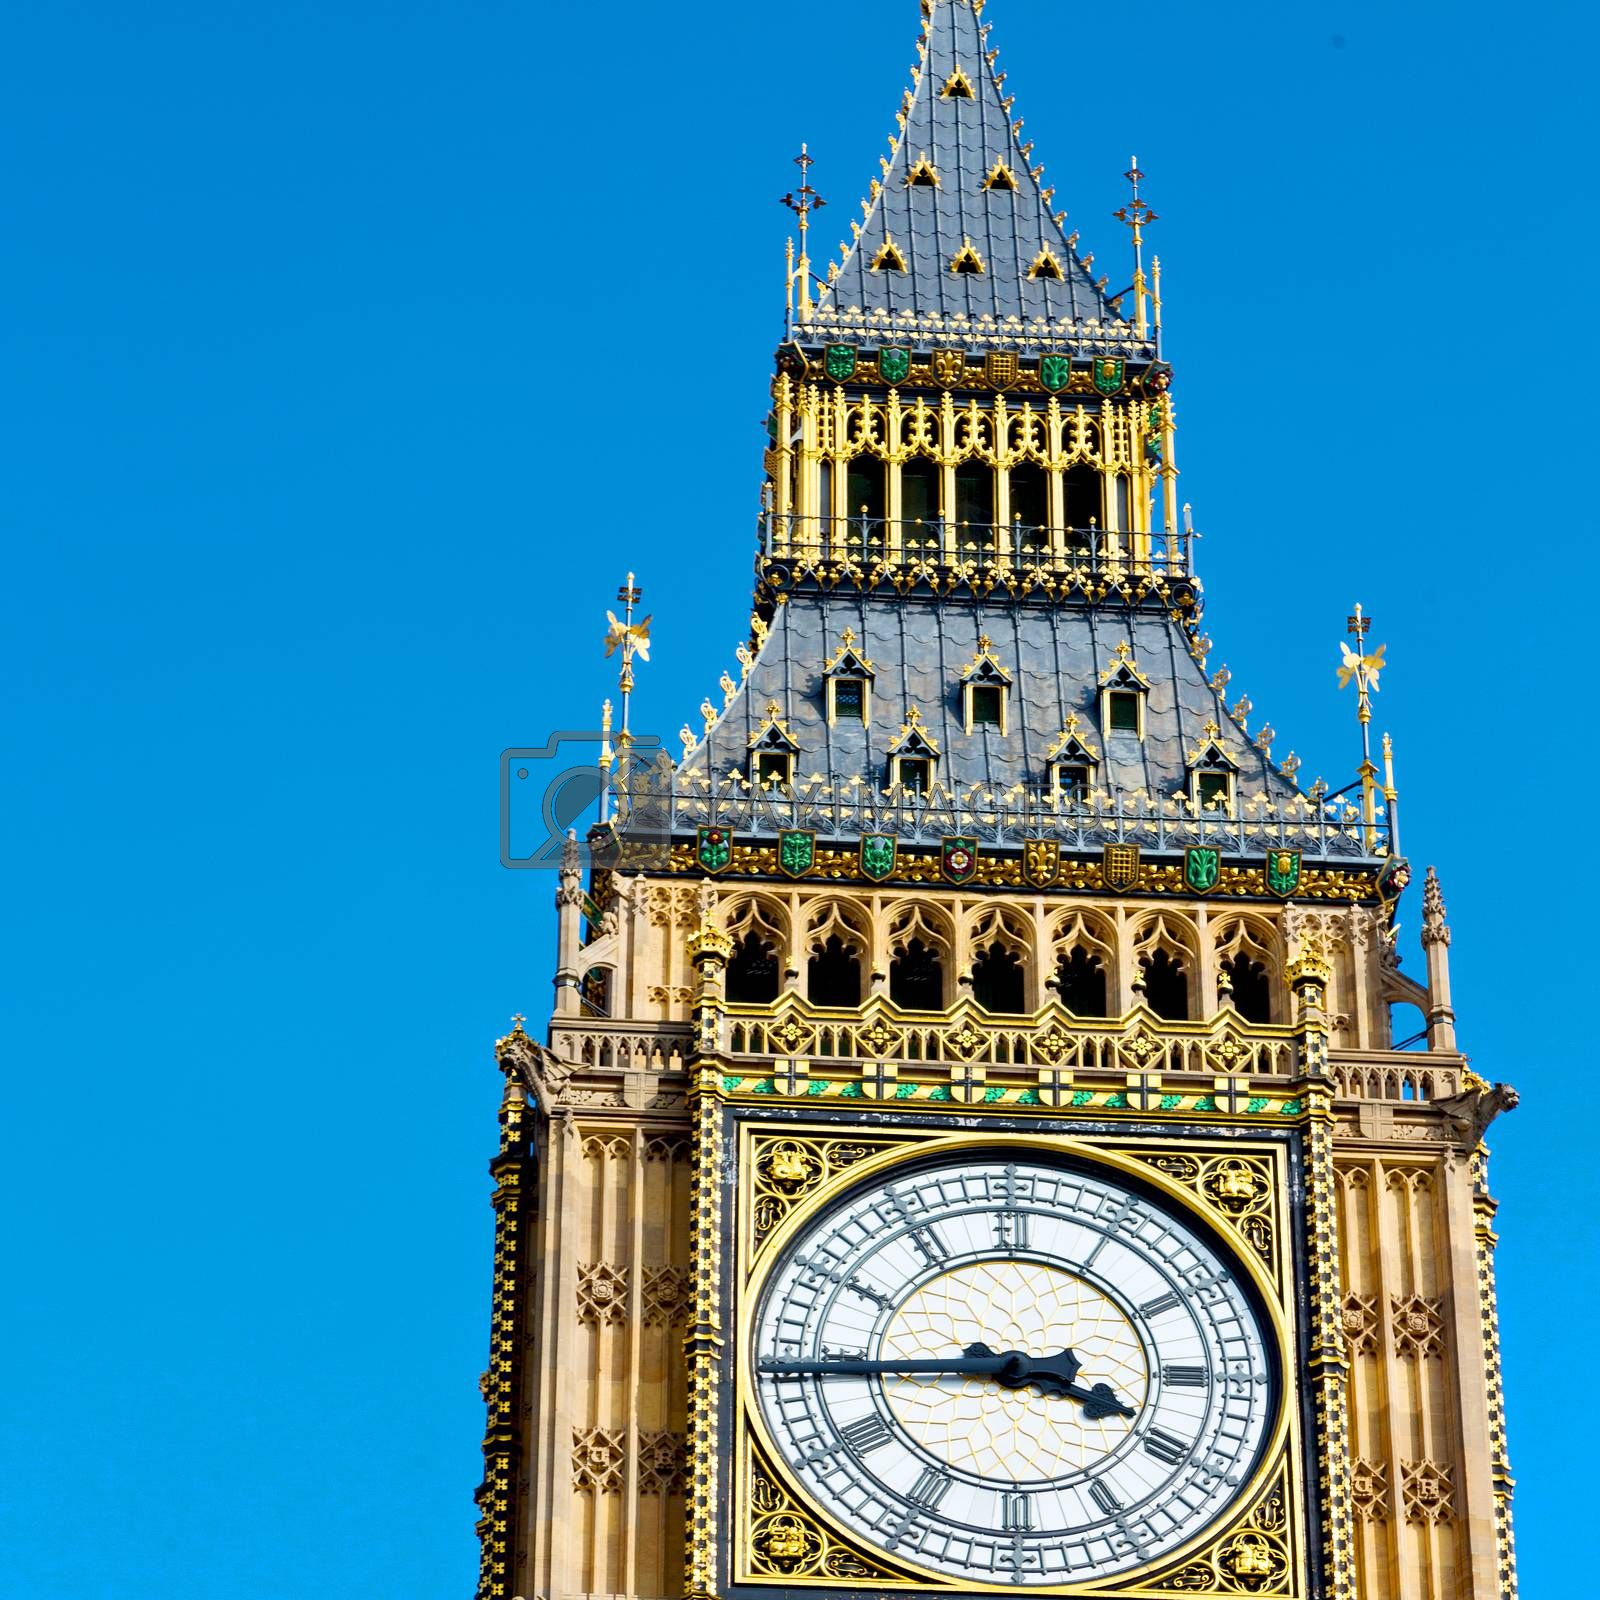 london big ben and historical old construction england  aged cit by lkpro